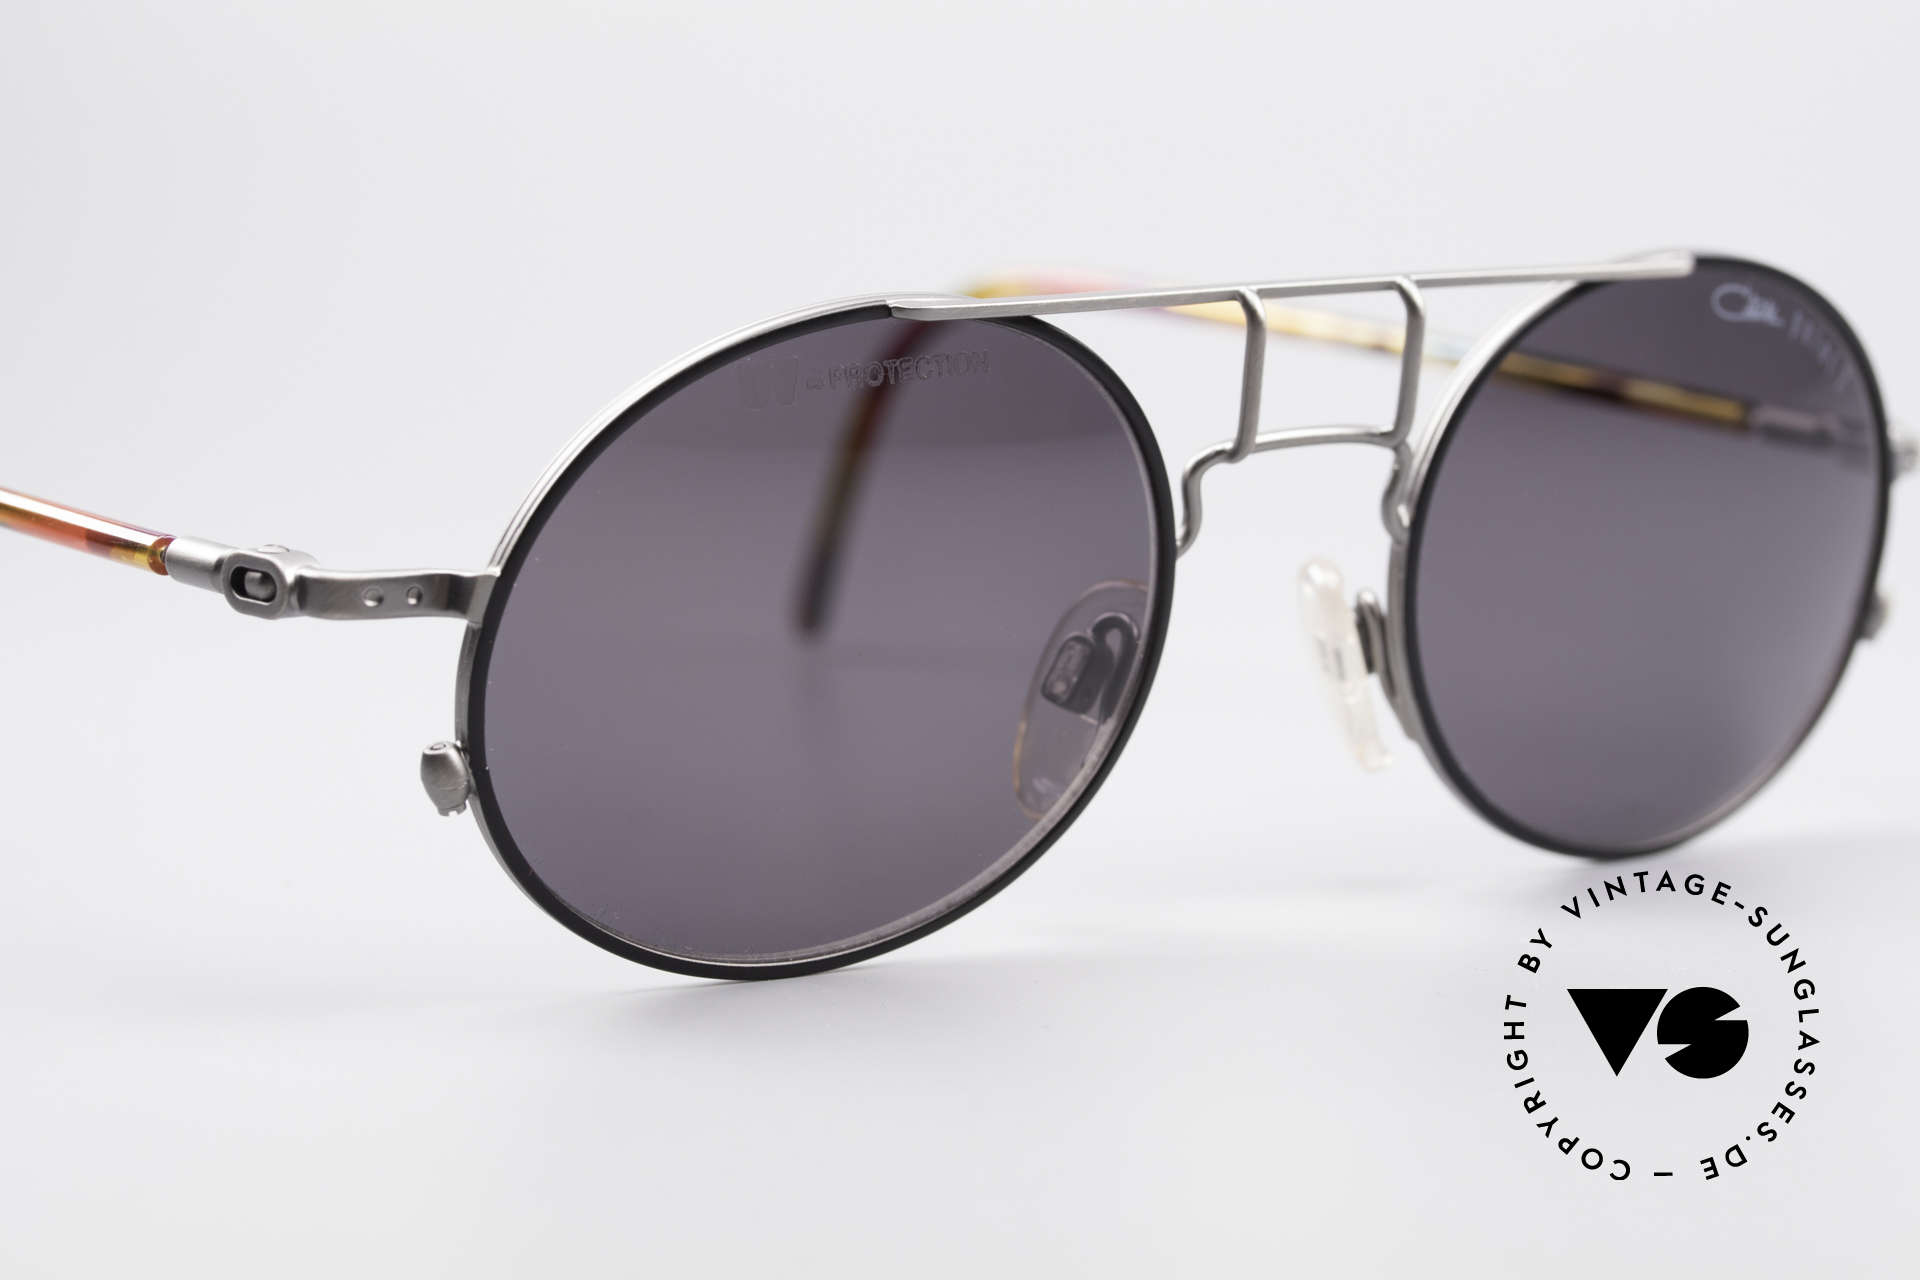 Cazal 1201 - Point 2 90's Industrial Style Shades, NO RETRO FASHION; but an old ORIGINAL from 1999, Made for Men